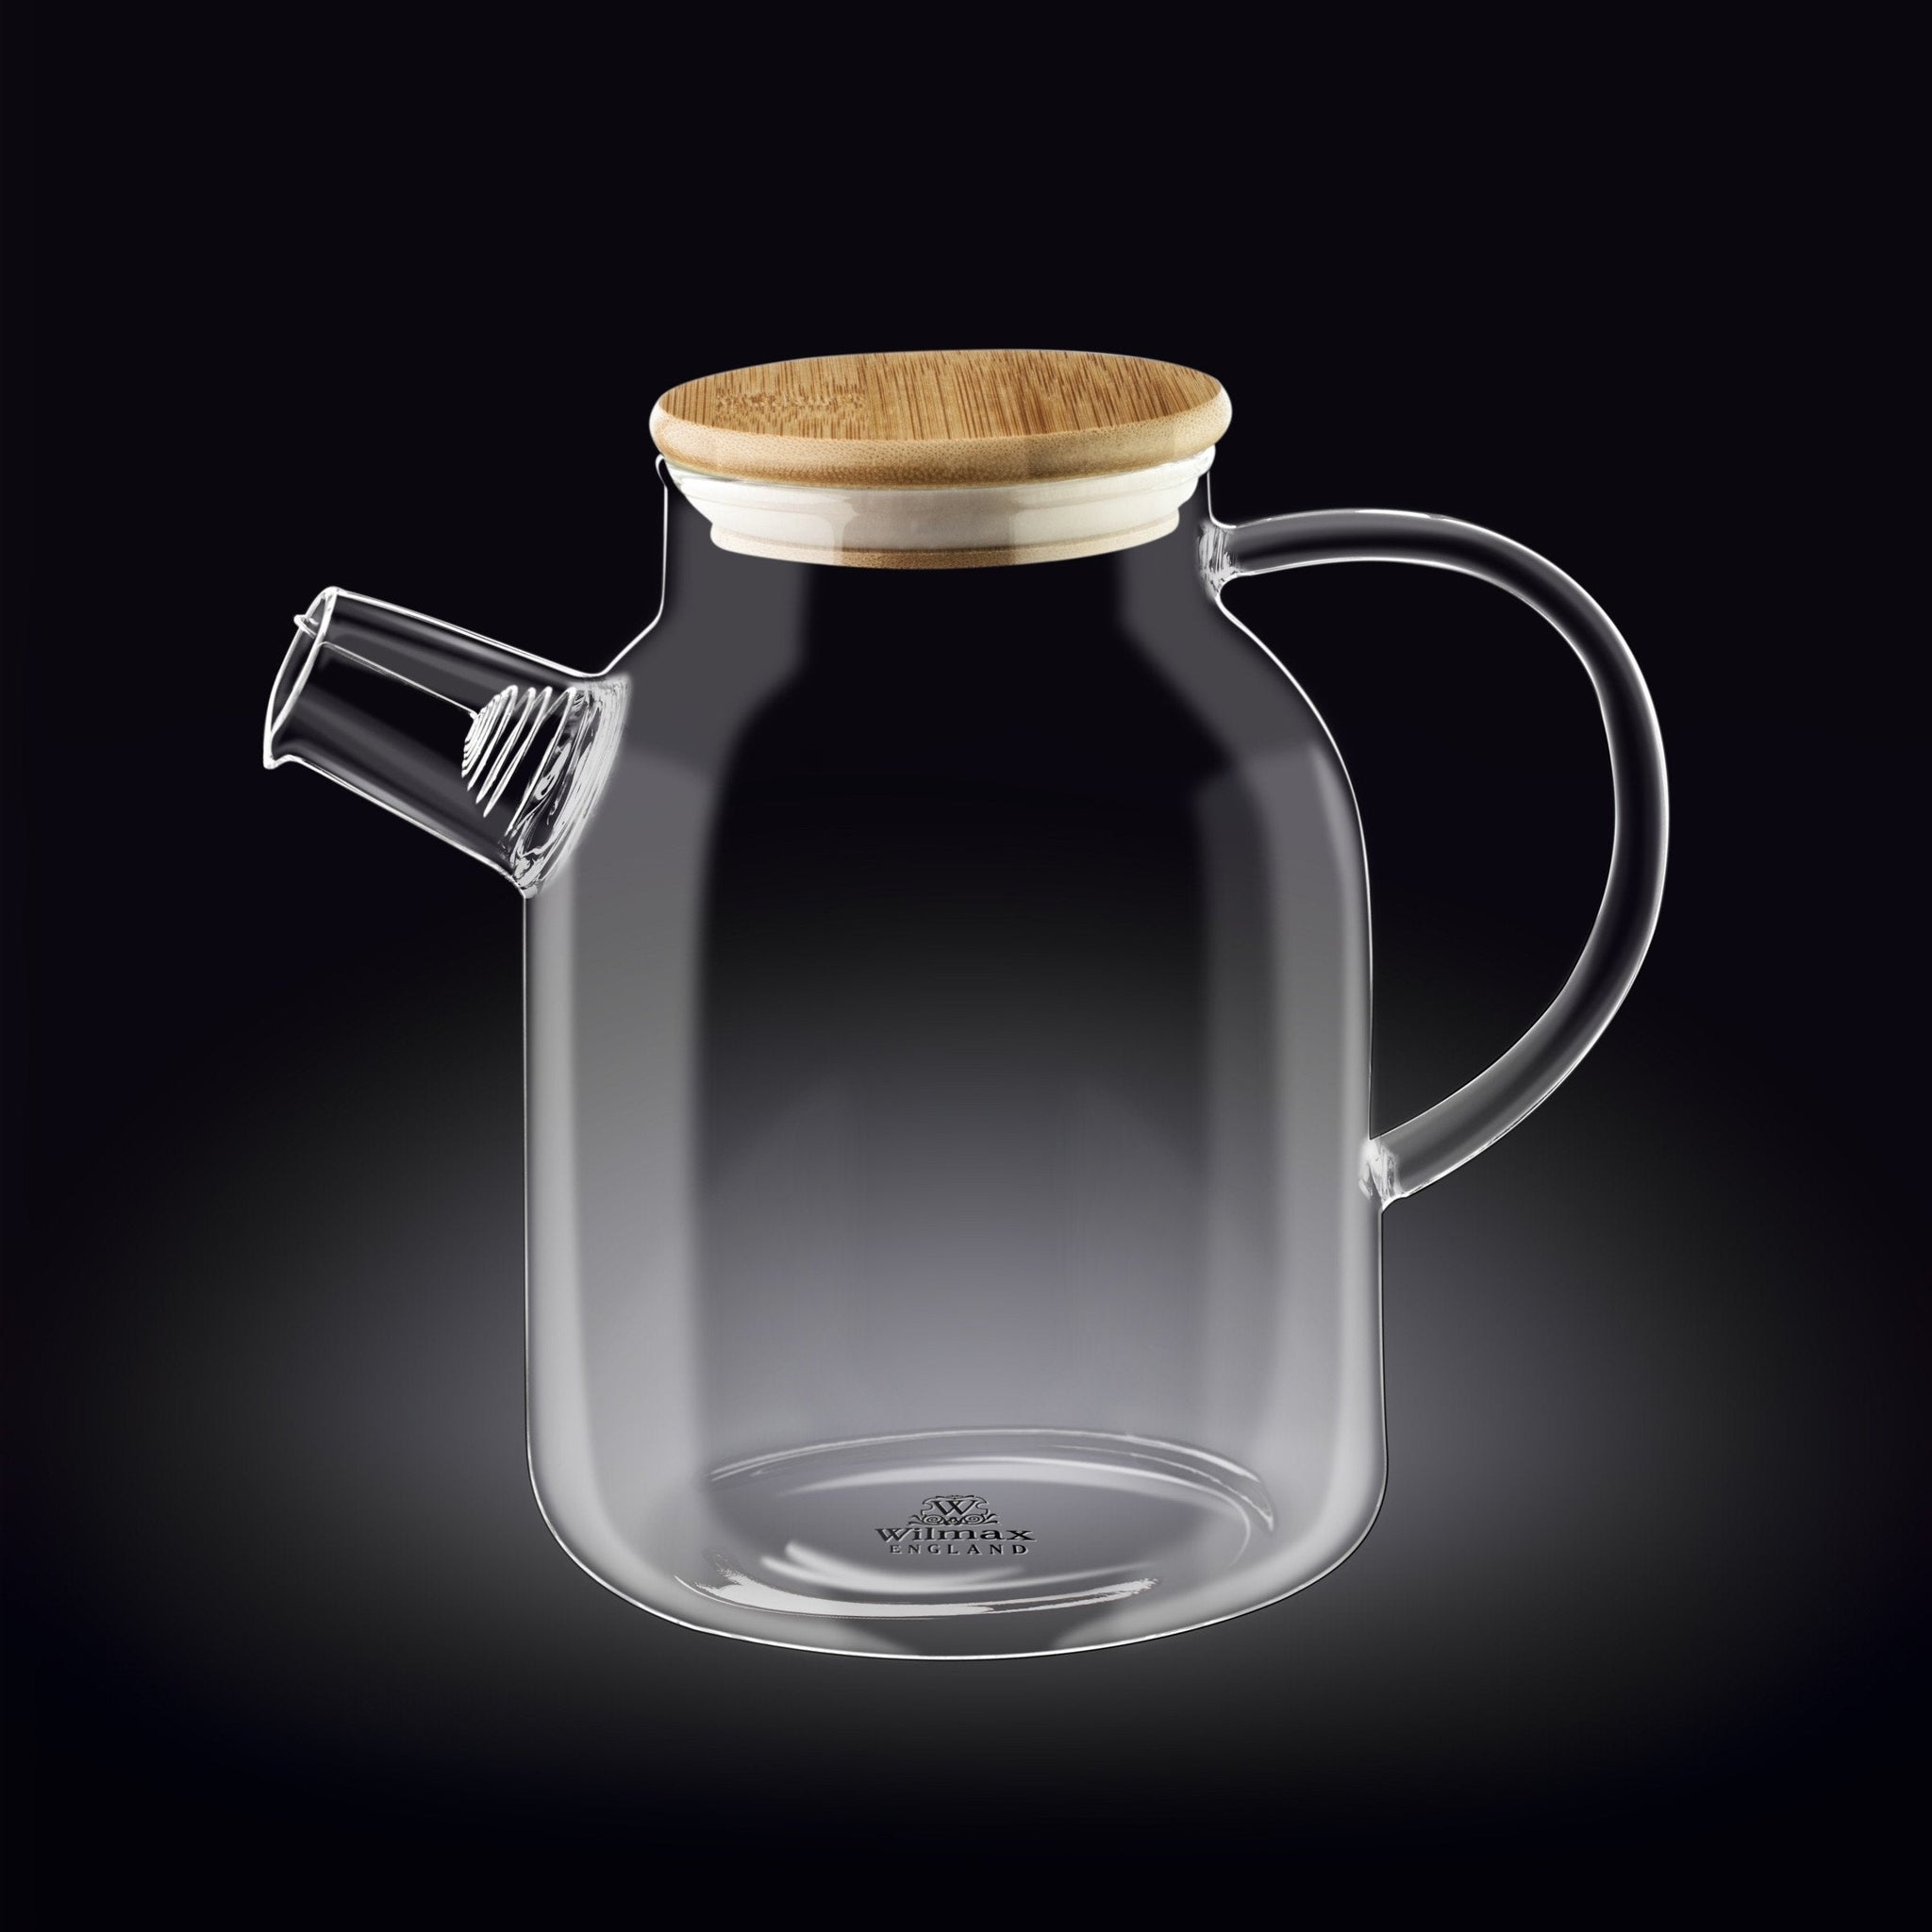 THERMO GLASS TEA POT 54 FL OZ | 1600 ML WL-888811/A